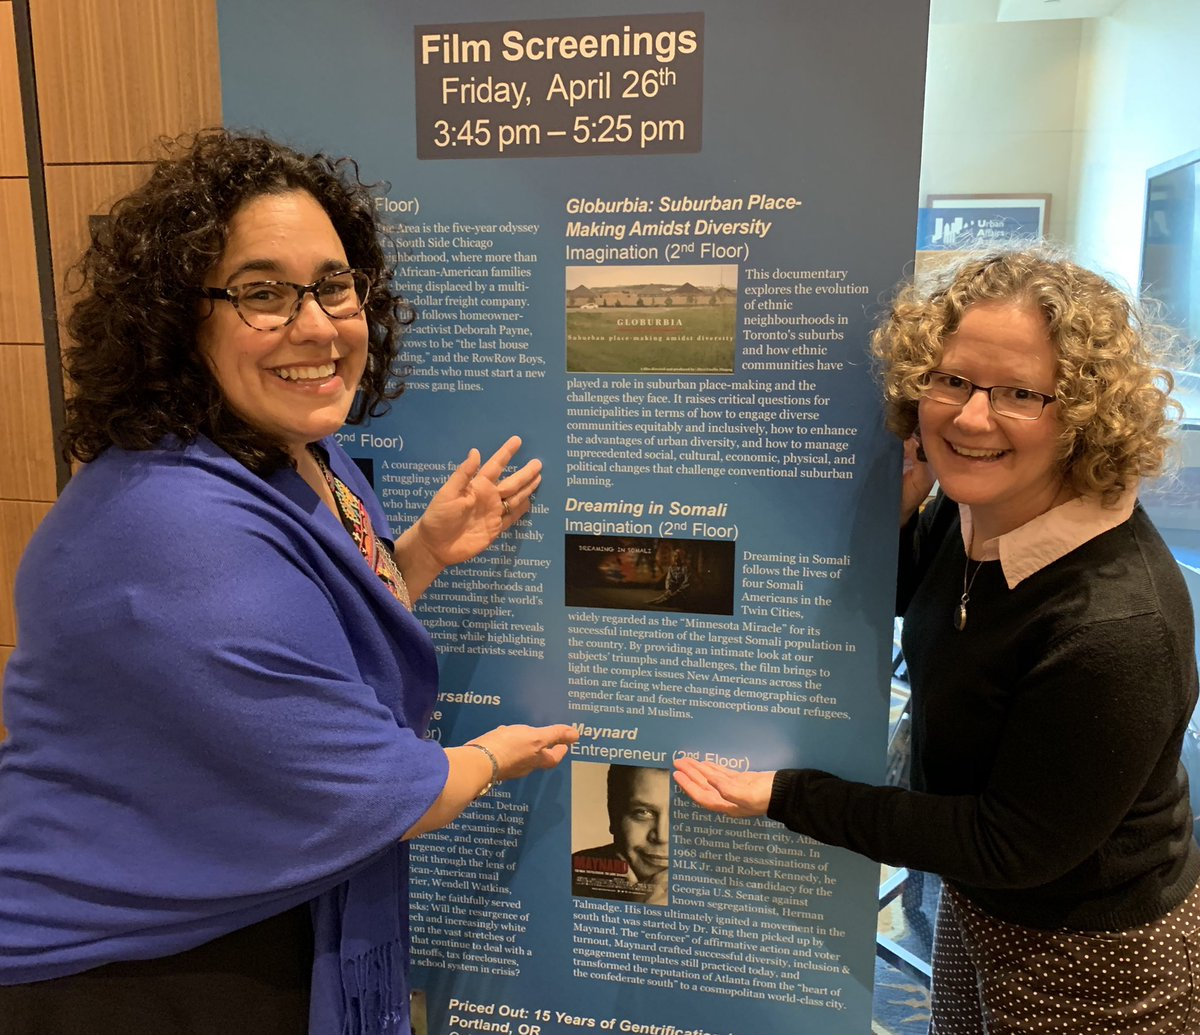 Photo to accompany bio of Chambers (who stands to the left) and Kalin (on the right). They are pointing to a large sign that lists the day's film screening, one of which is Dreaming in Somali.